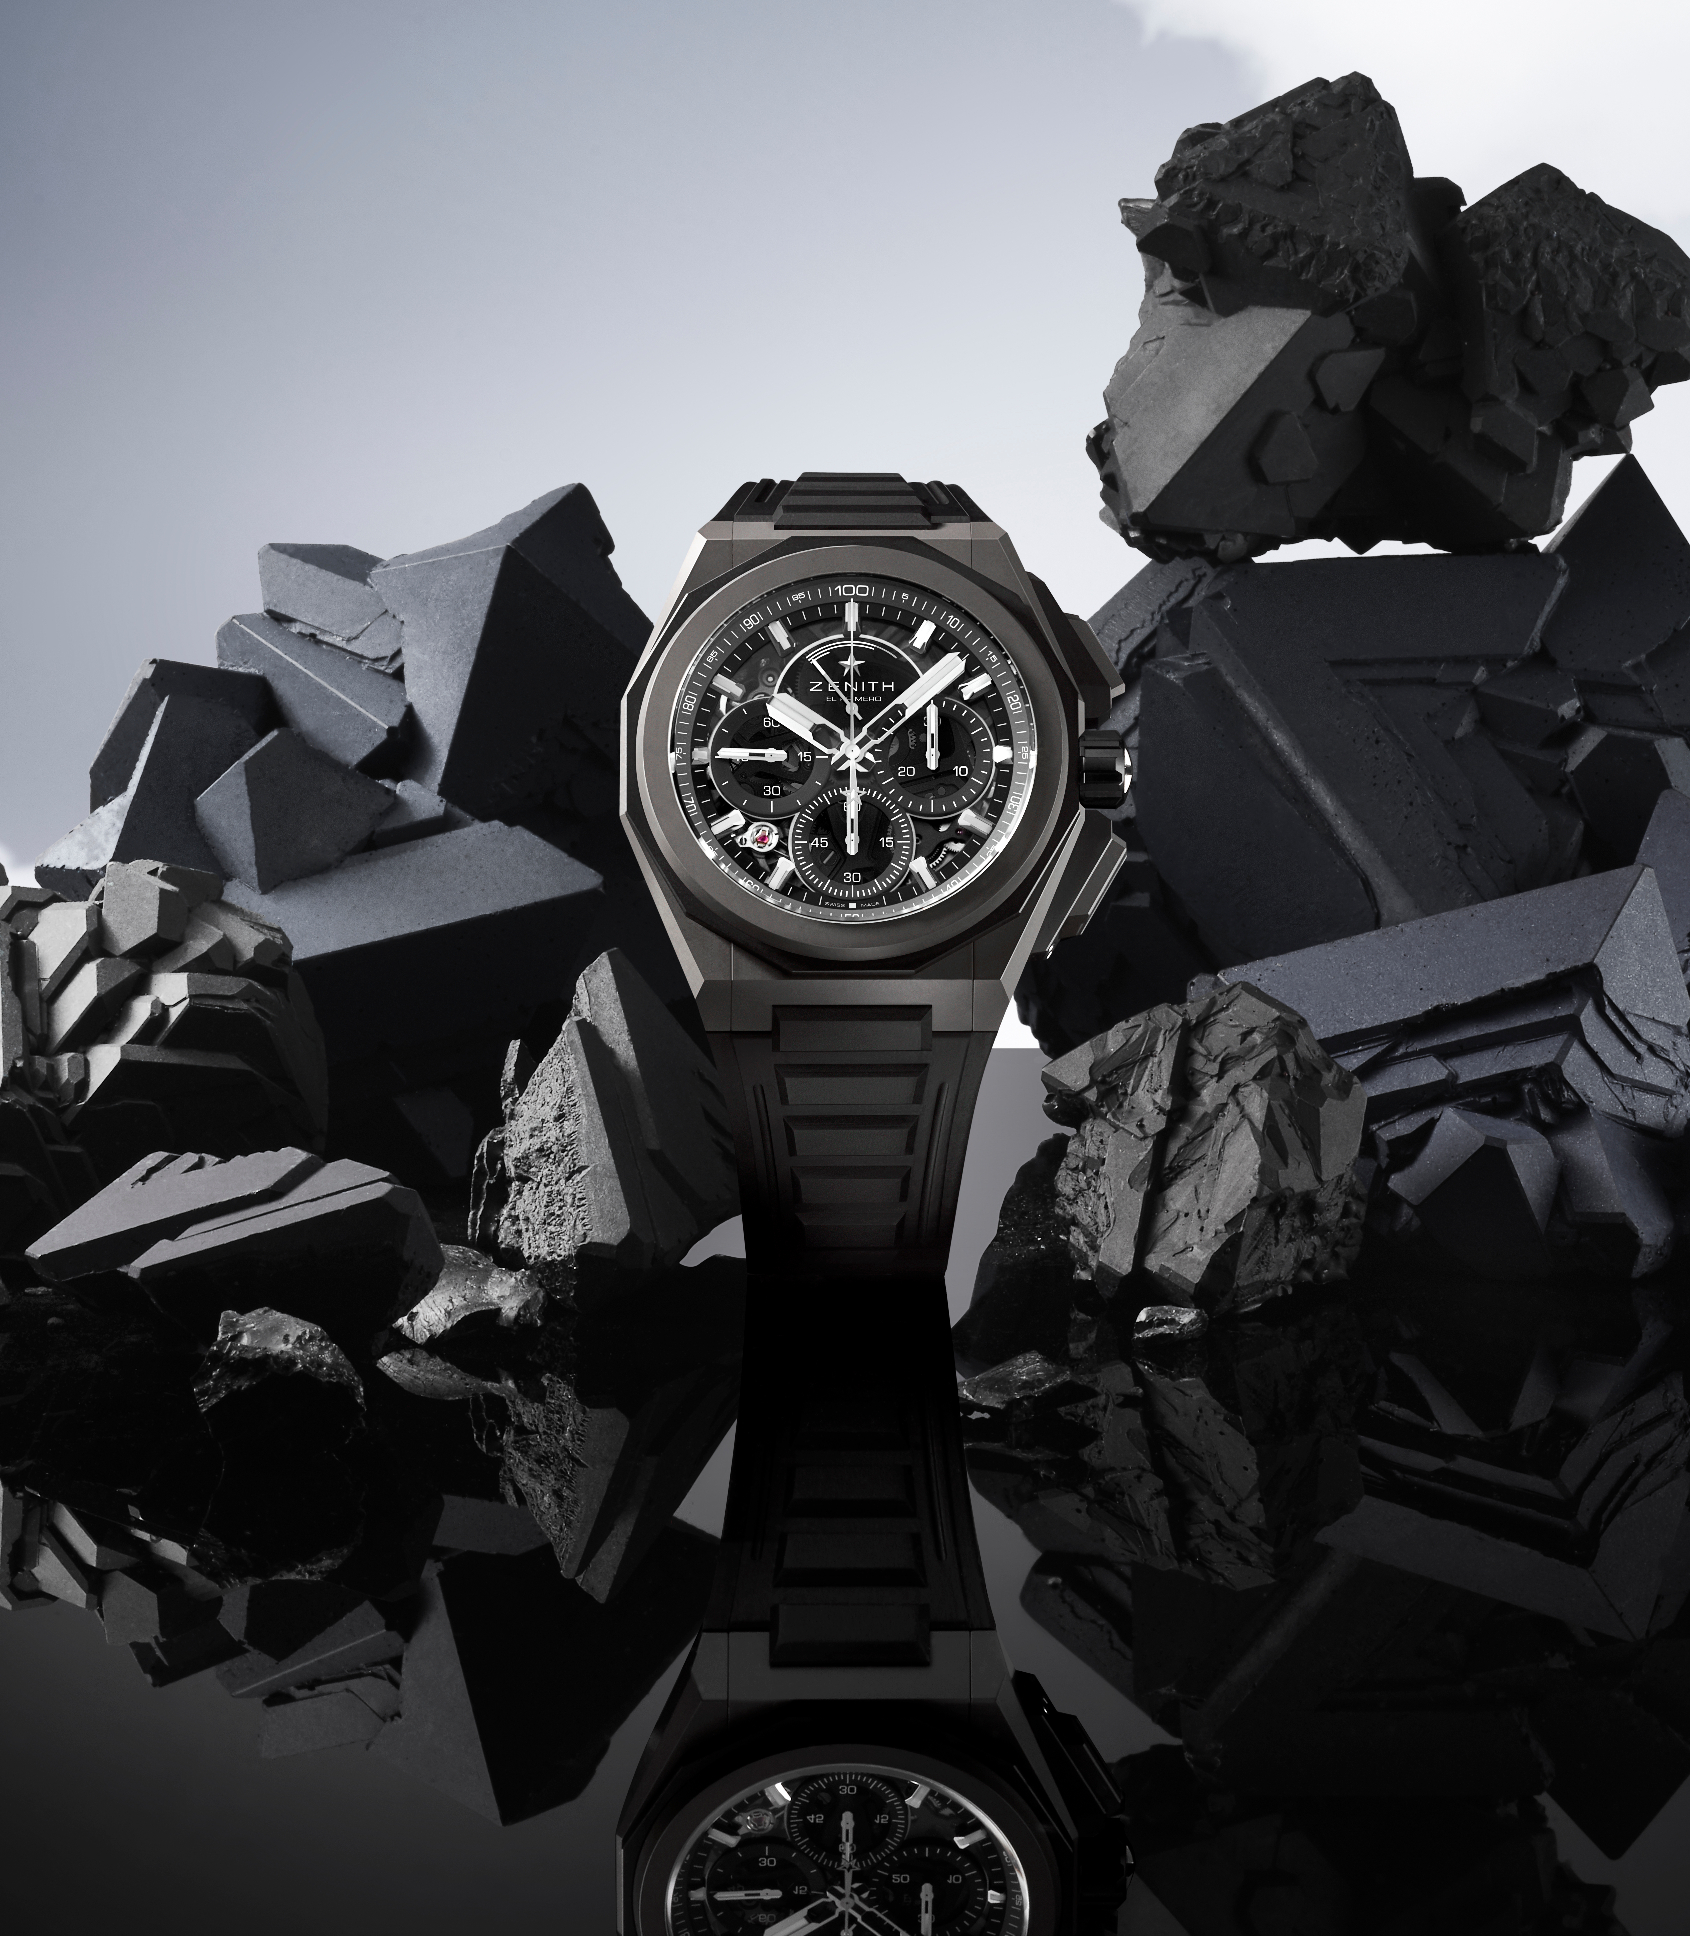 INTRODUCING: The new Zenith DEFY Extreme delivers three titanium-armoured sports watch contenders